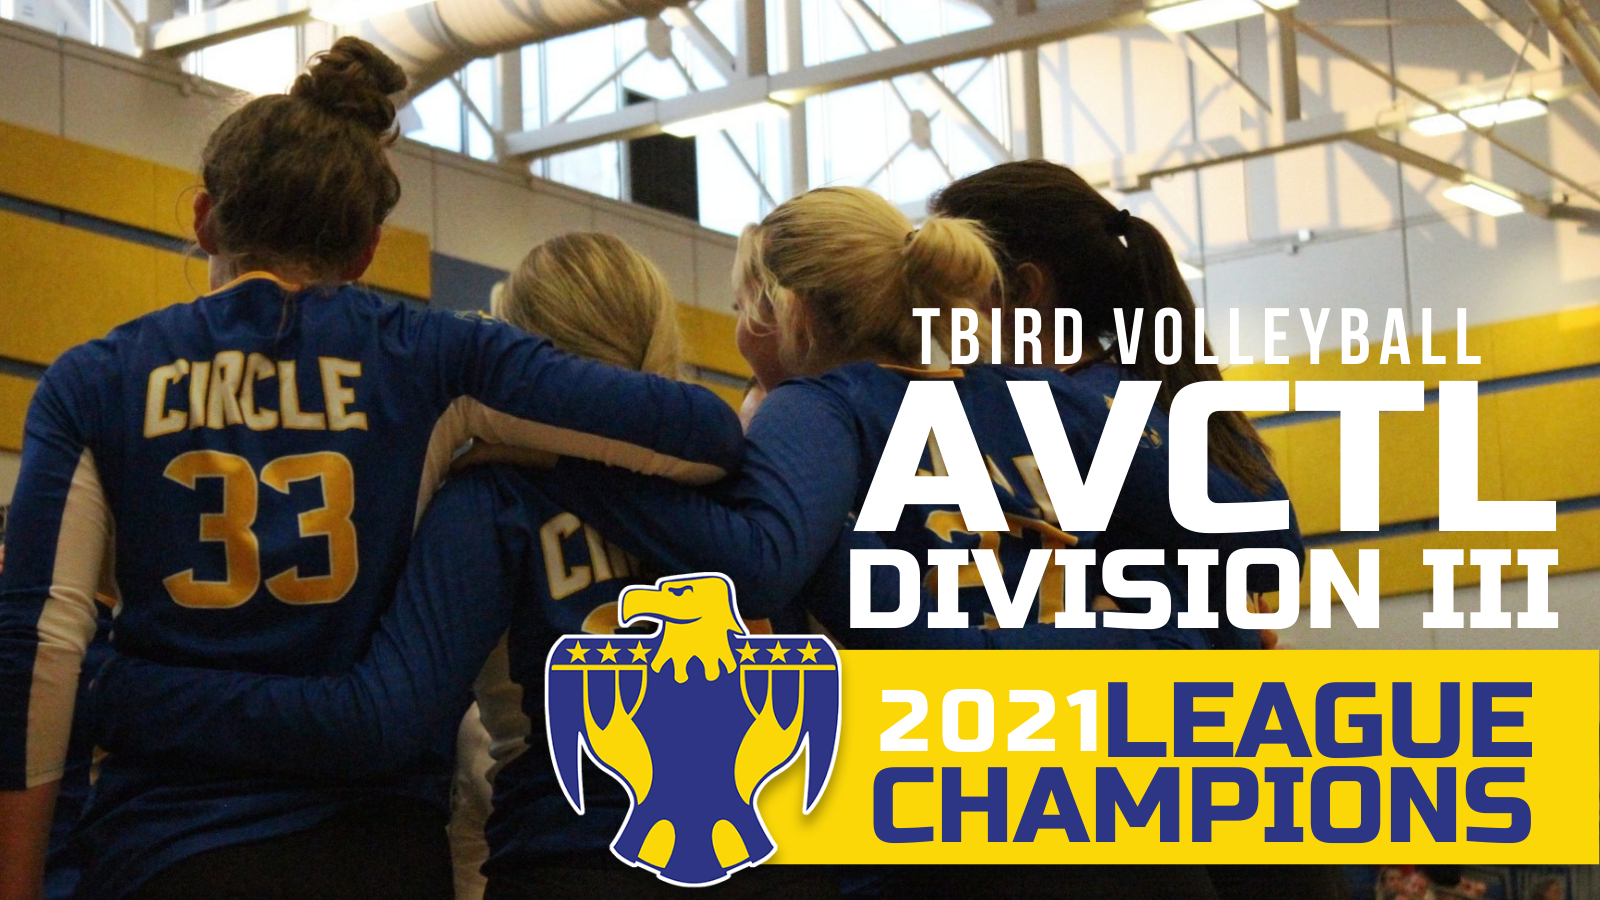 AVCTL Division III League Champions